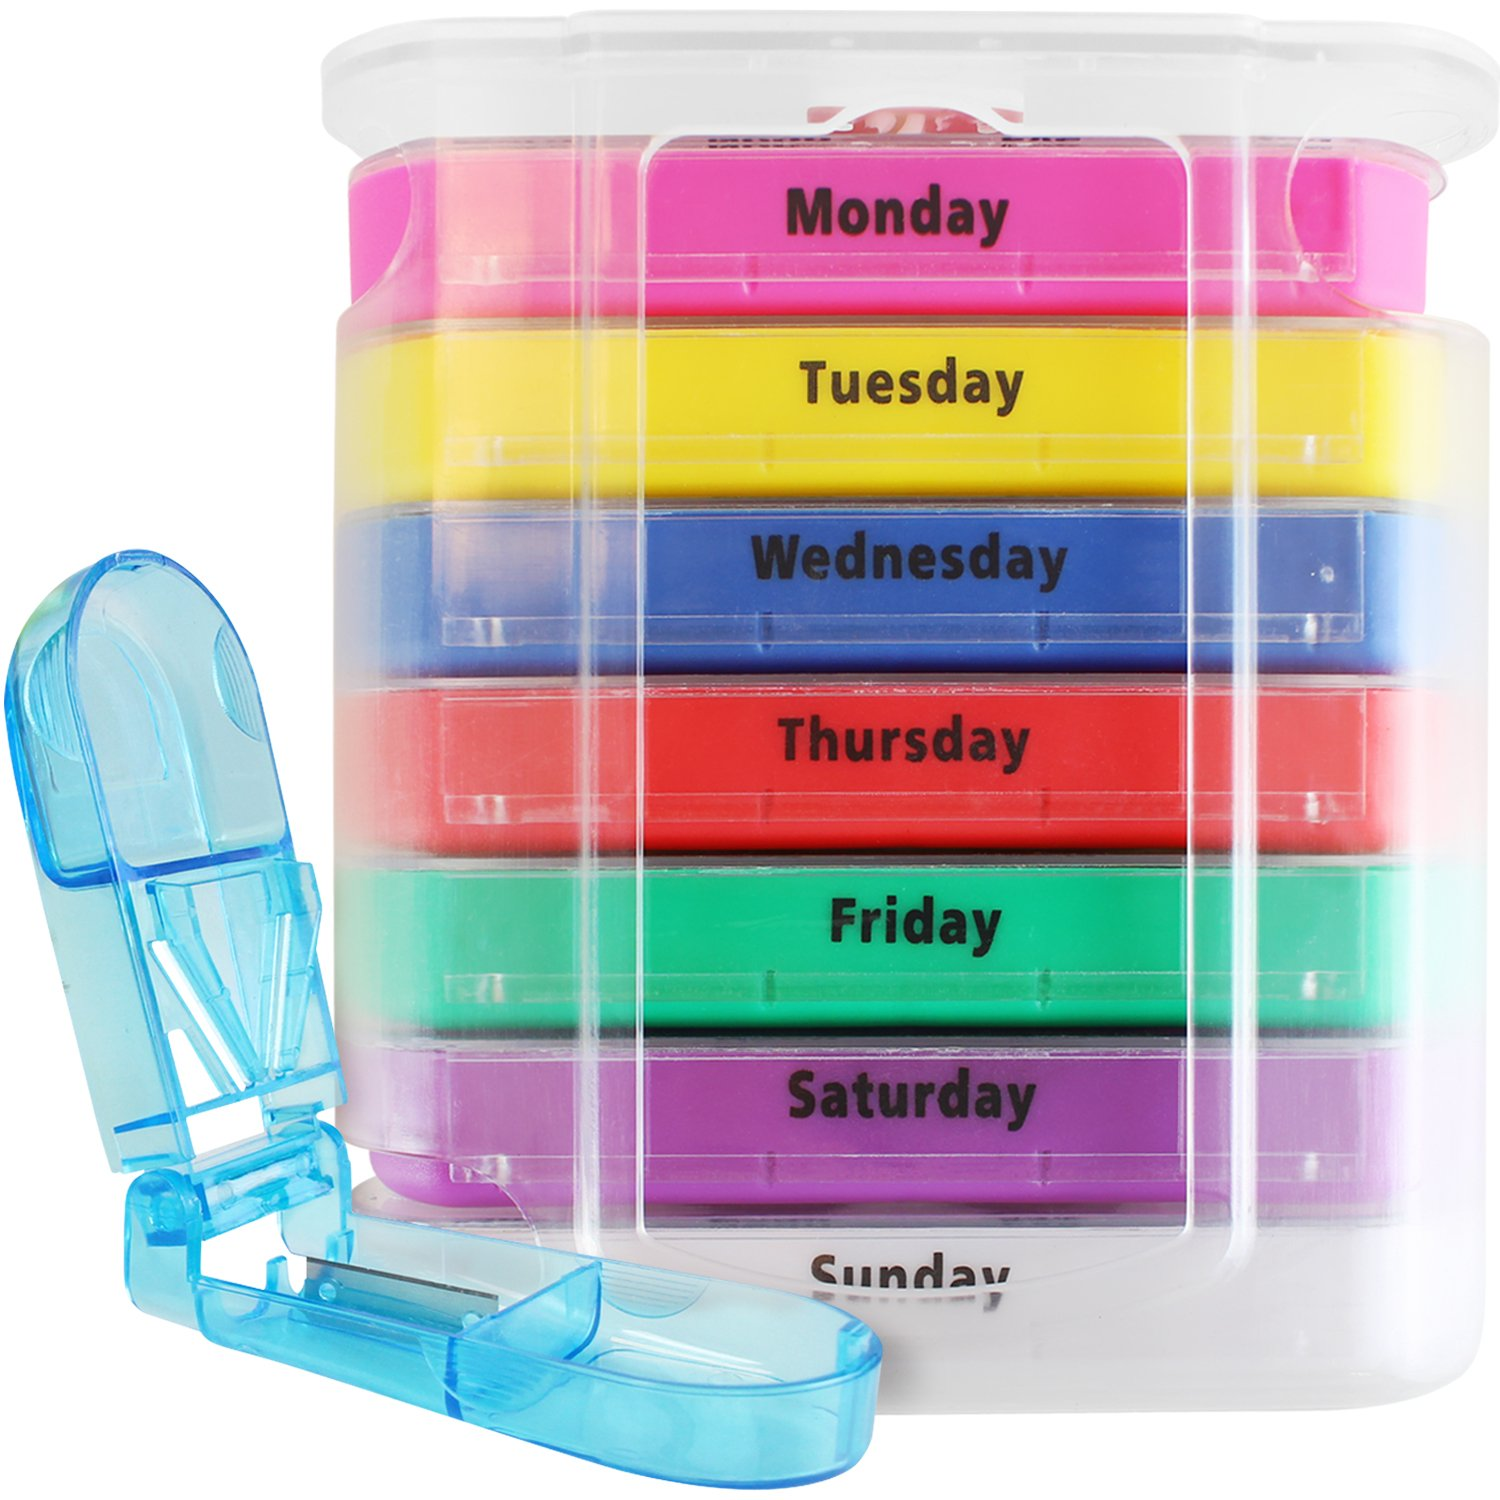 Vive 4 Times a Day Pill Organizer - Weekly Medicine Holder - AM PM Dispenser Case with Splitter Cutter - Portable Daily Vitamin Container - Slim 7 Day Travel Calendar